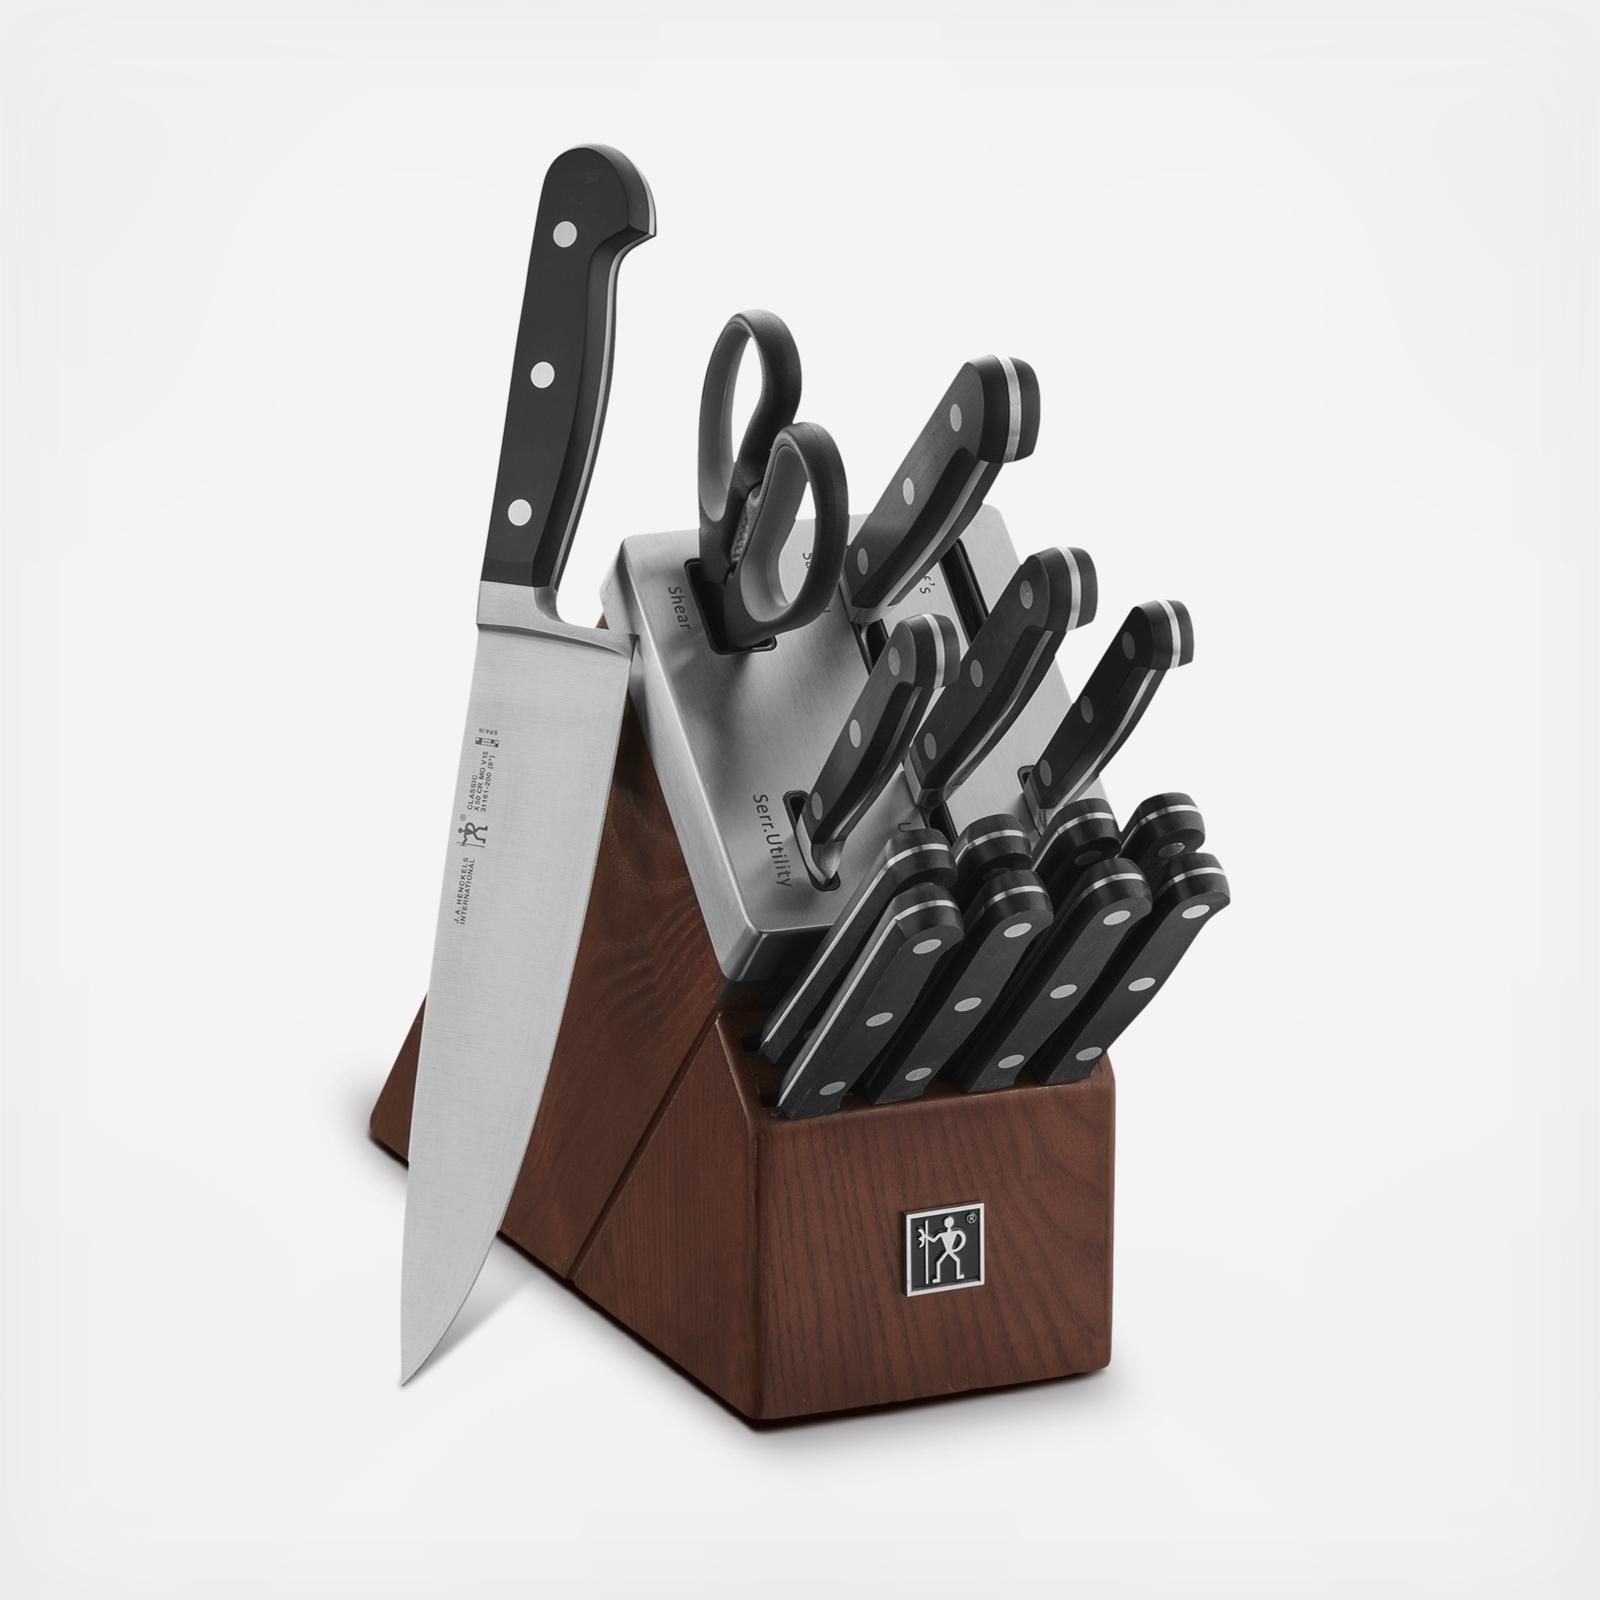 Calphalon Classic 15 Piece Self Sharpening Stainless Steel Cutlery Knife And Block Set With Sharp In Technology 2017942 The Home Depot Knife Block Set Stainless Steel Cutlery Knife Block